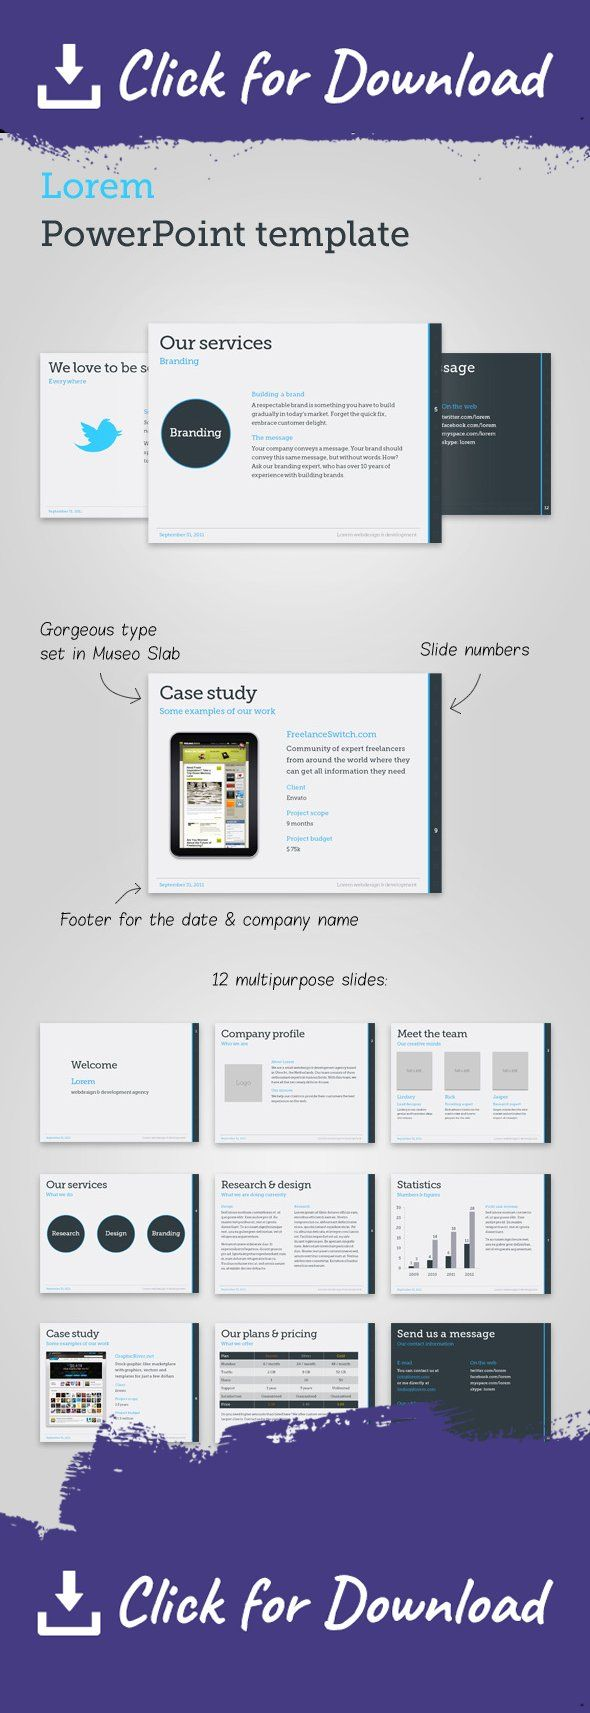 Lorem PowerPoint template is a modern, professional PowerPoint template for Microsoft PowerPoint 2007 and 2003. The template includes 12 slides for case studies, business proposals, graphs, tables and regular text. A color and font scheme is used to provide flexibility for customization. Features  12 multipurpose slides Gorgeous type set in Museo Slab Professional color scheme All elements aligned on a grid Business proposal text to get you started Documentation Theme file  Requirements…